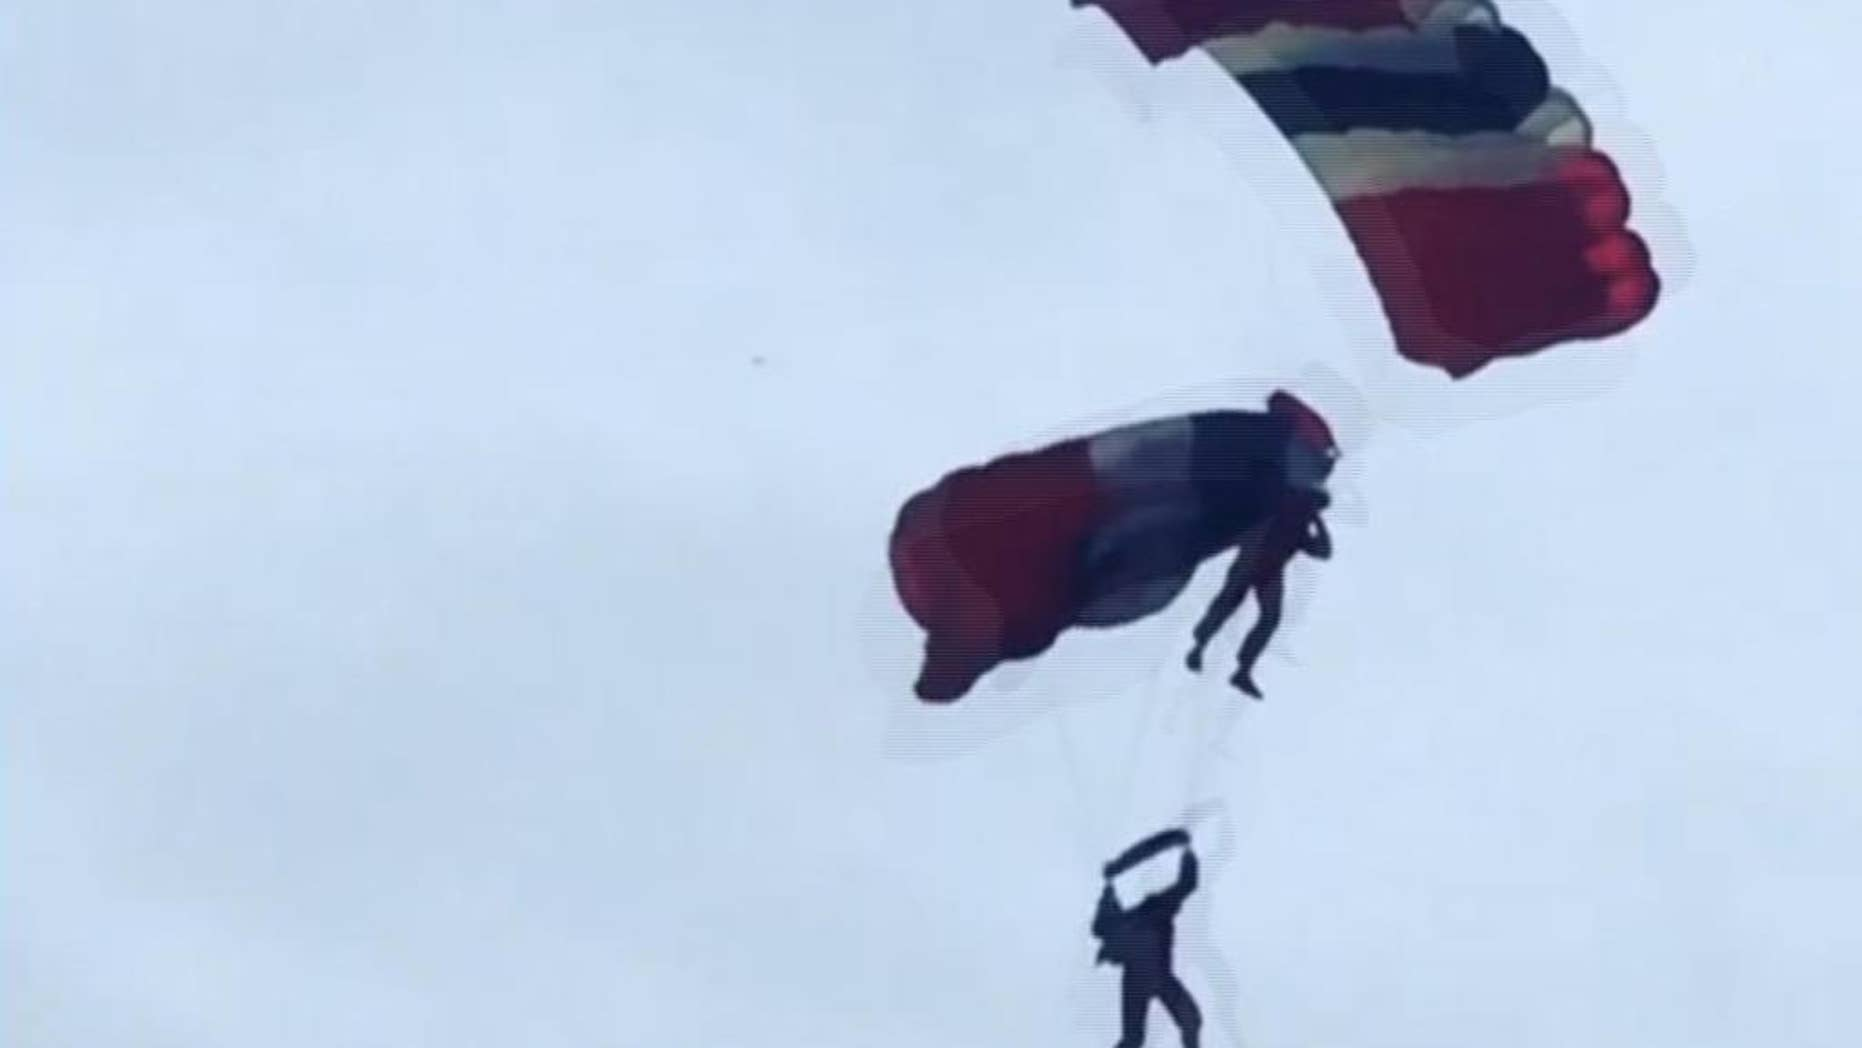 "This image taken from video provided by Ricky Parnaby shows a member of the British military stunt team, The Red Devils, receiving assistance from a teammate after his parachute failed to open properly whilst performing Friday, June 19, 2015 at the Whitehaven Airshow in northwestern England. A message posted on the show's Facebook page assured spectators that both were fine after ""one team member caught his teammate and brought him into Queens Dock."" The parachutists landed in water and were plucked to safety. (Ricky Parnaby via AP)  MANDATORY CREDIT"